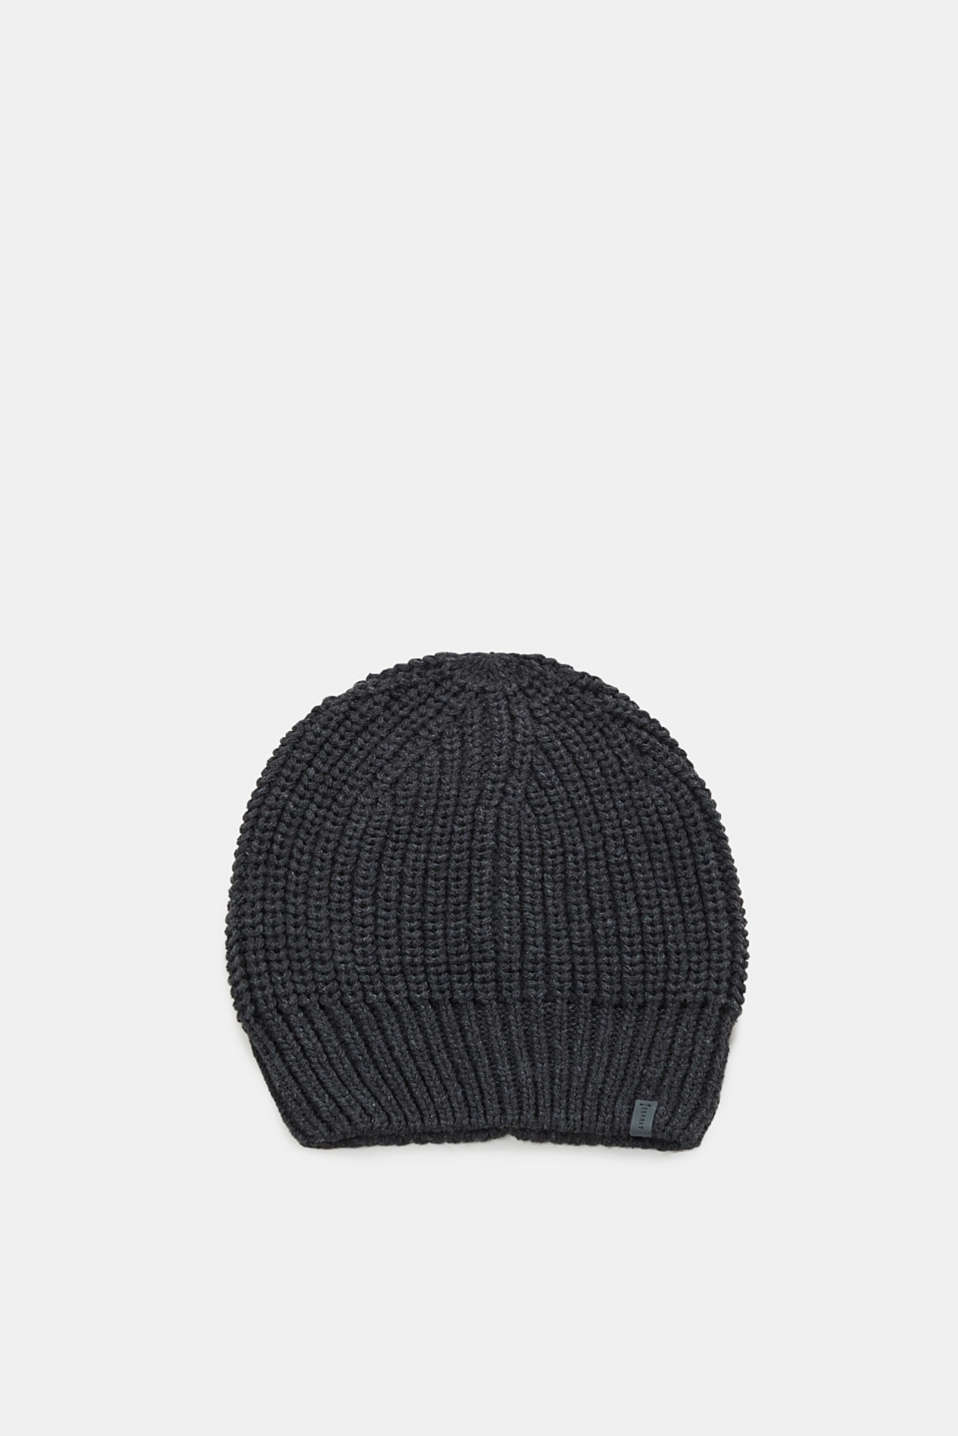 Esprit - Hat with rib knit texture